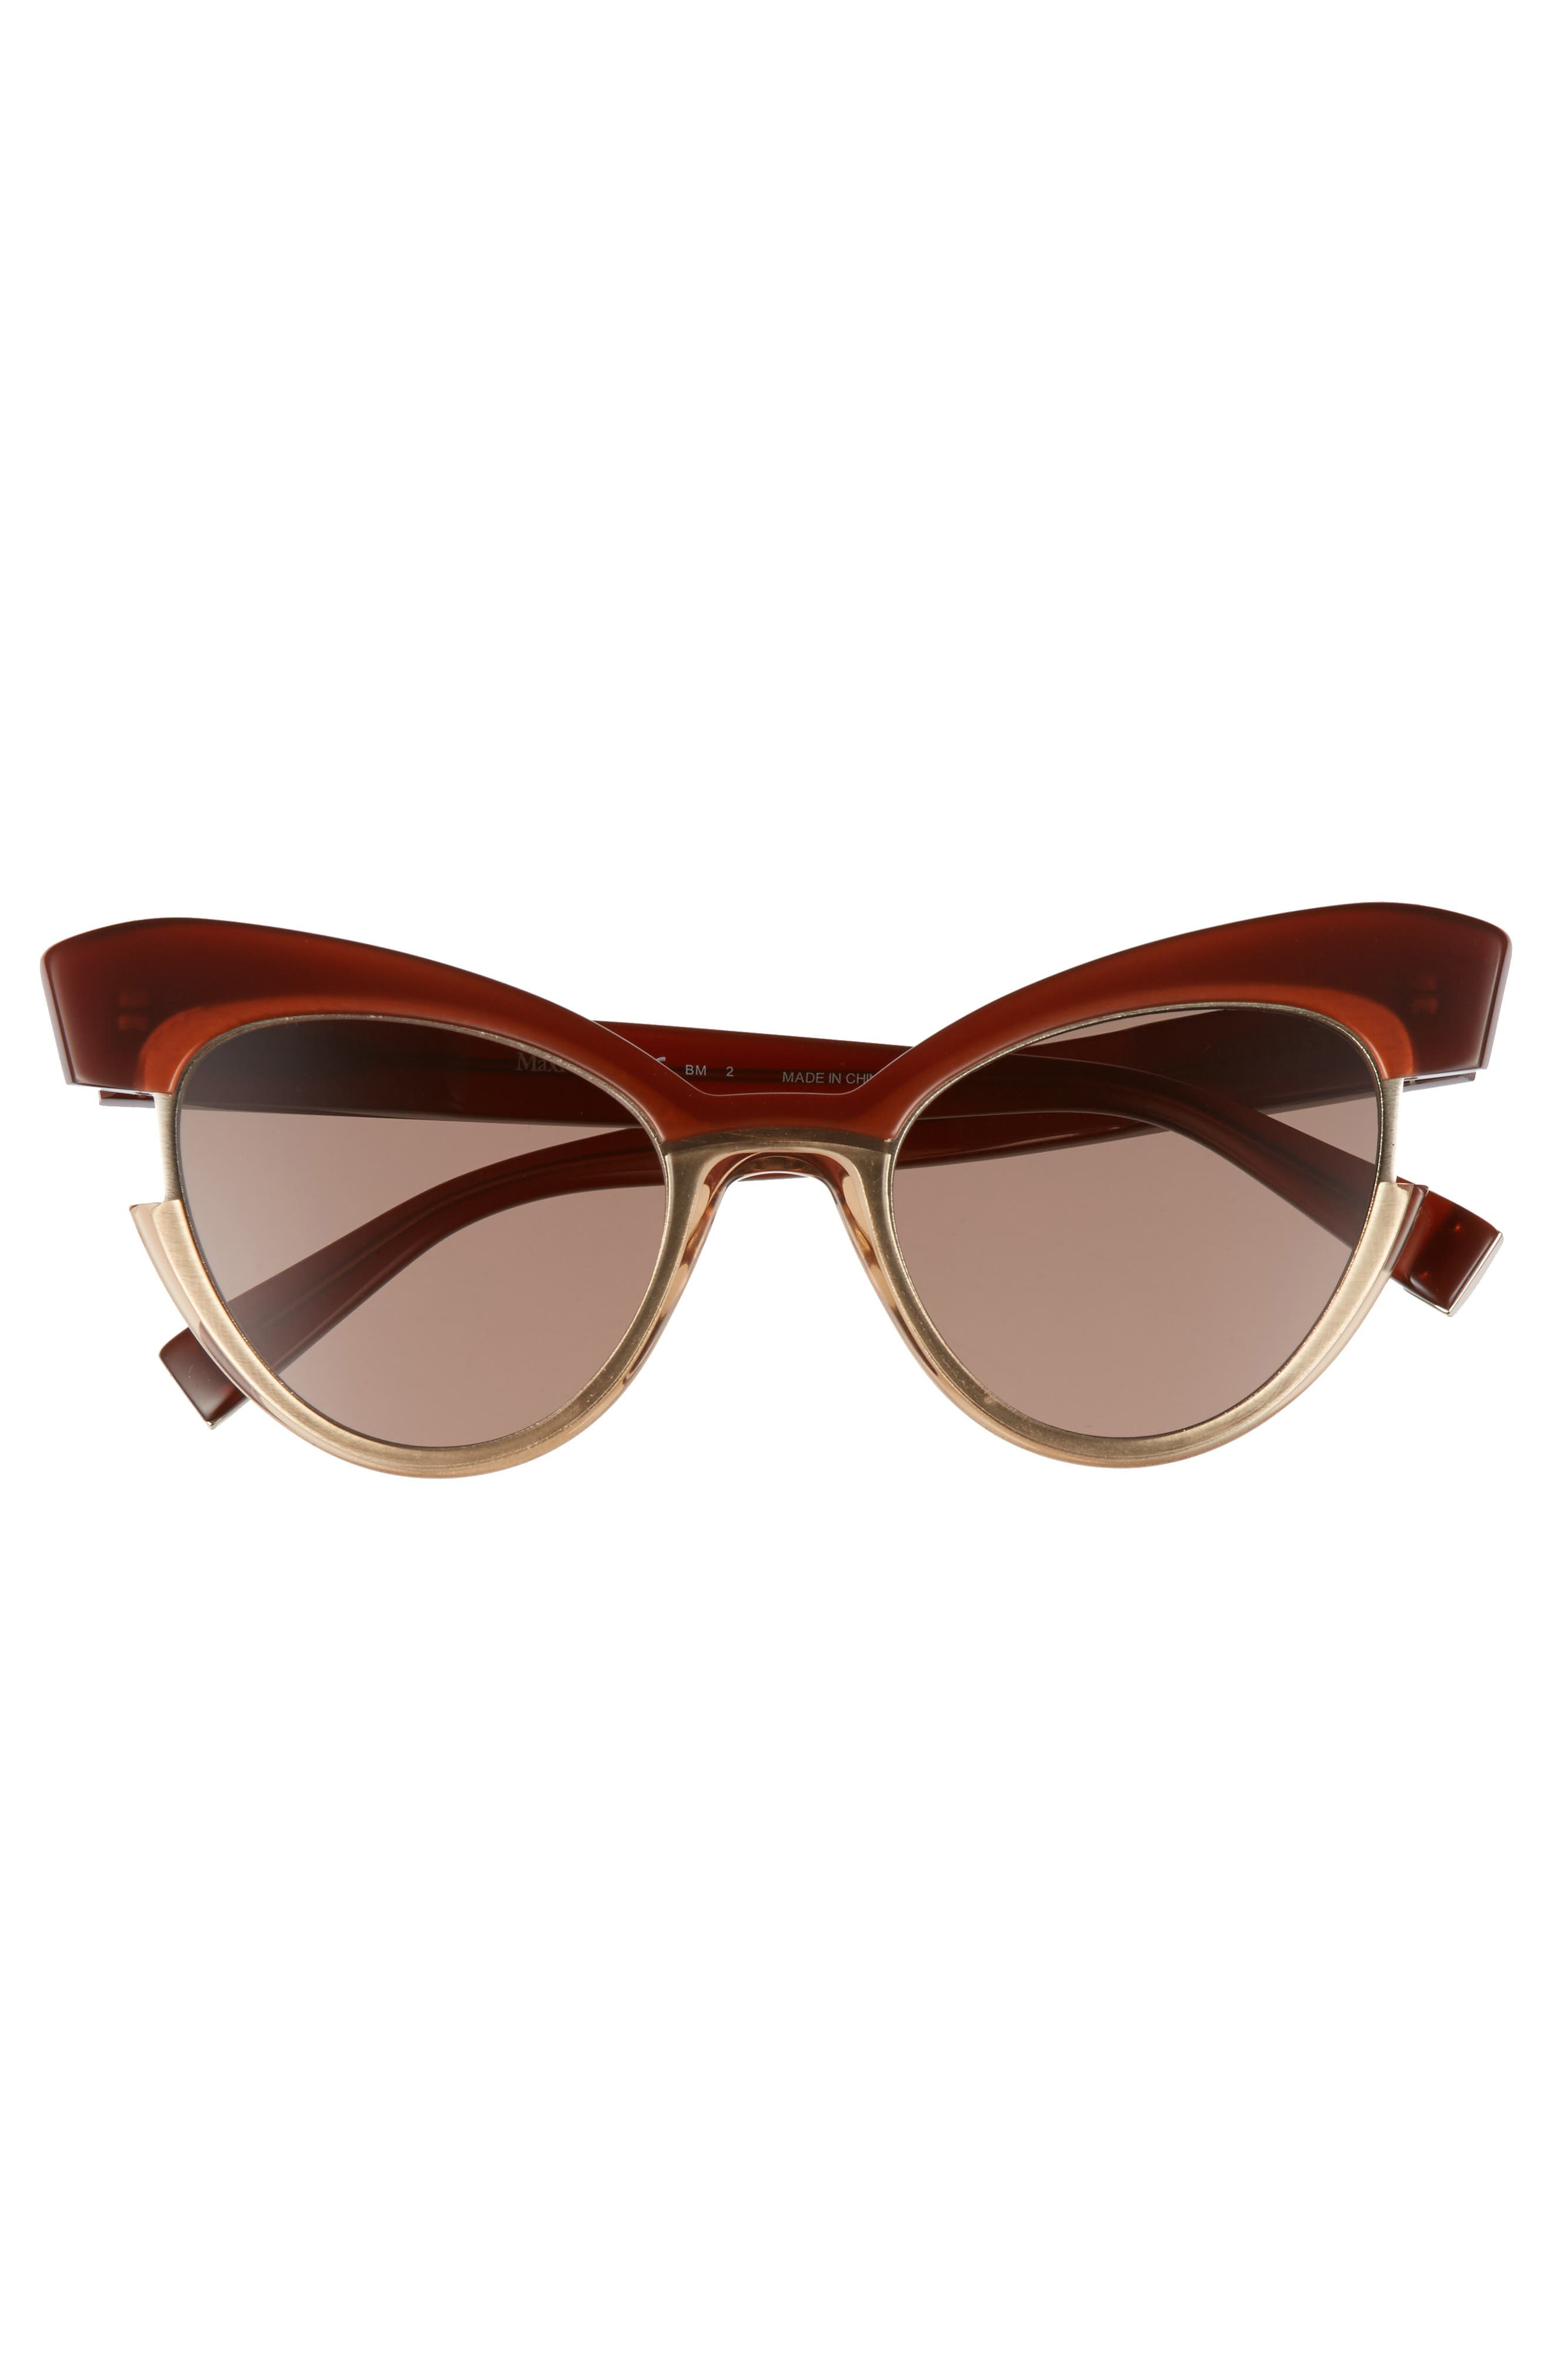 Alternate Image 3  - Max Mara 49mm Gradient Lens Cat Eye Sunglasses